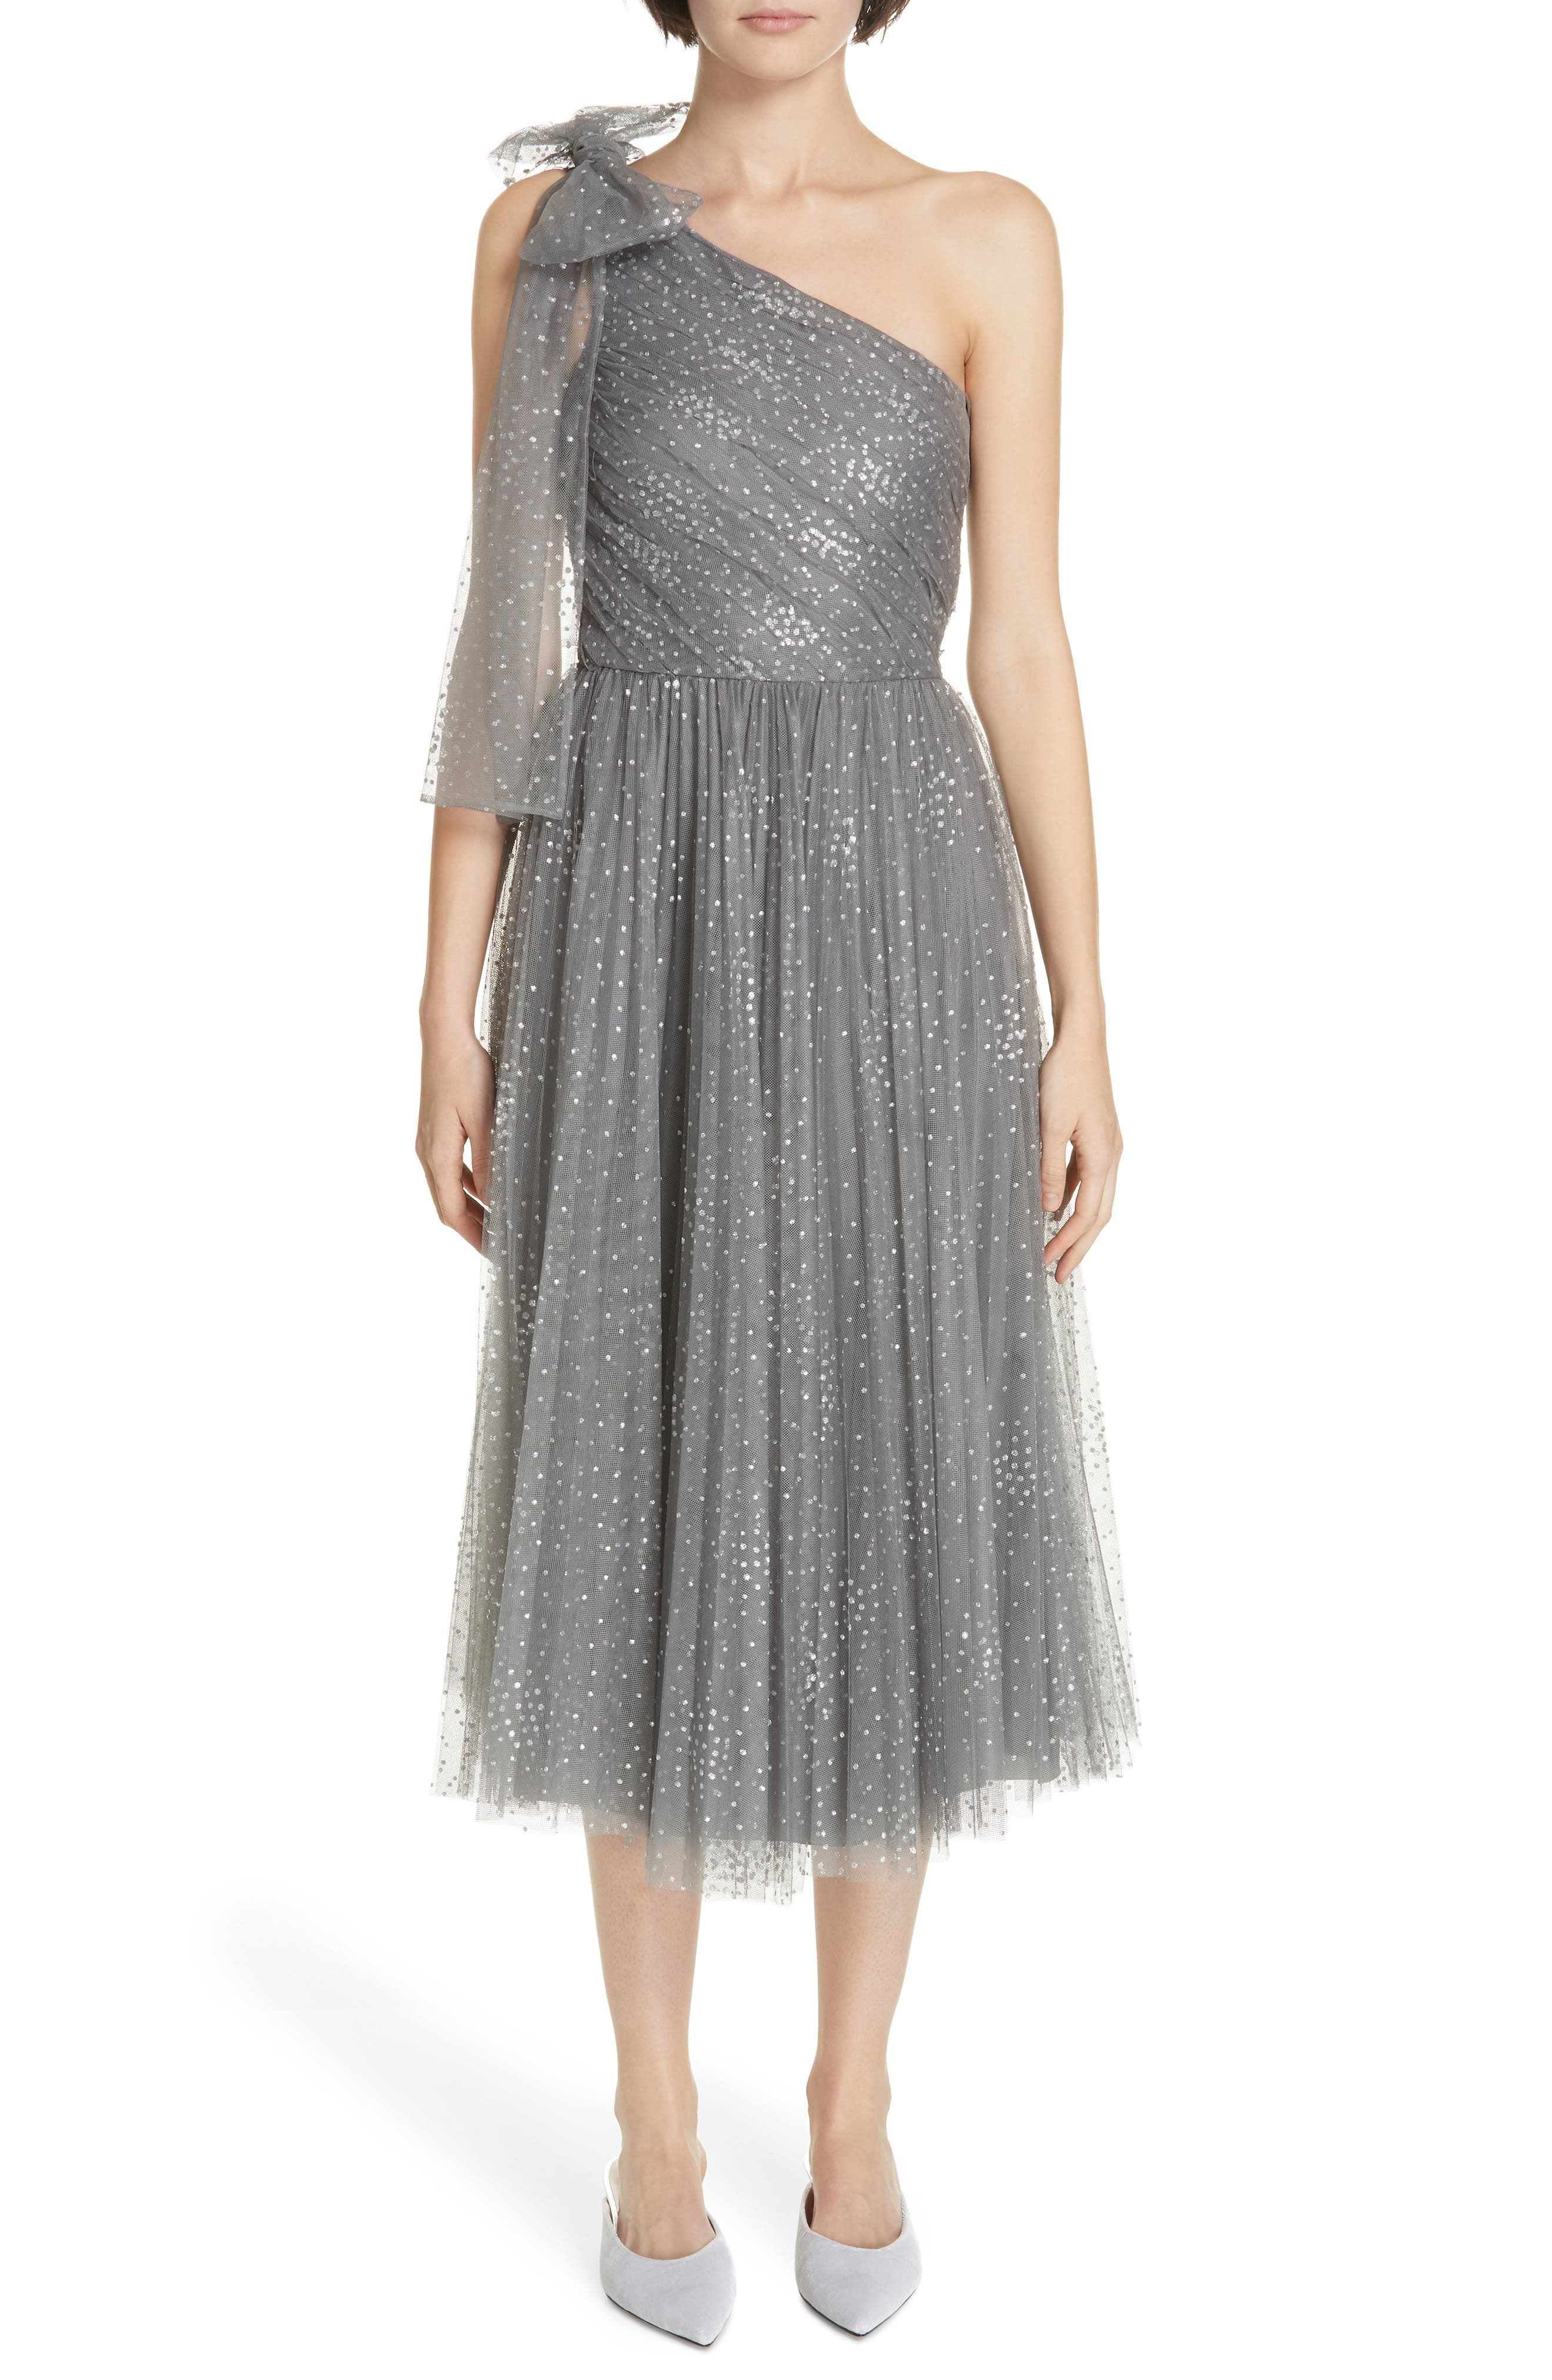 Red Valentino Metallic One-Shoulder A-Line Dress, US / 44 IT - Grey